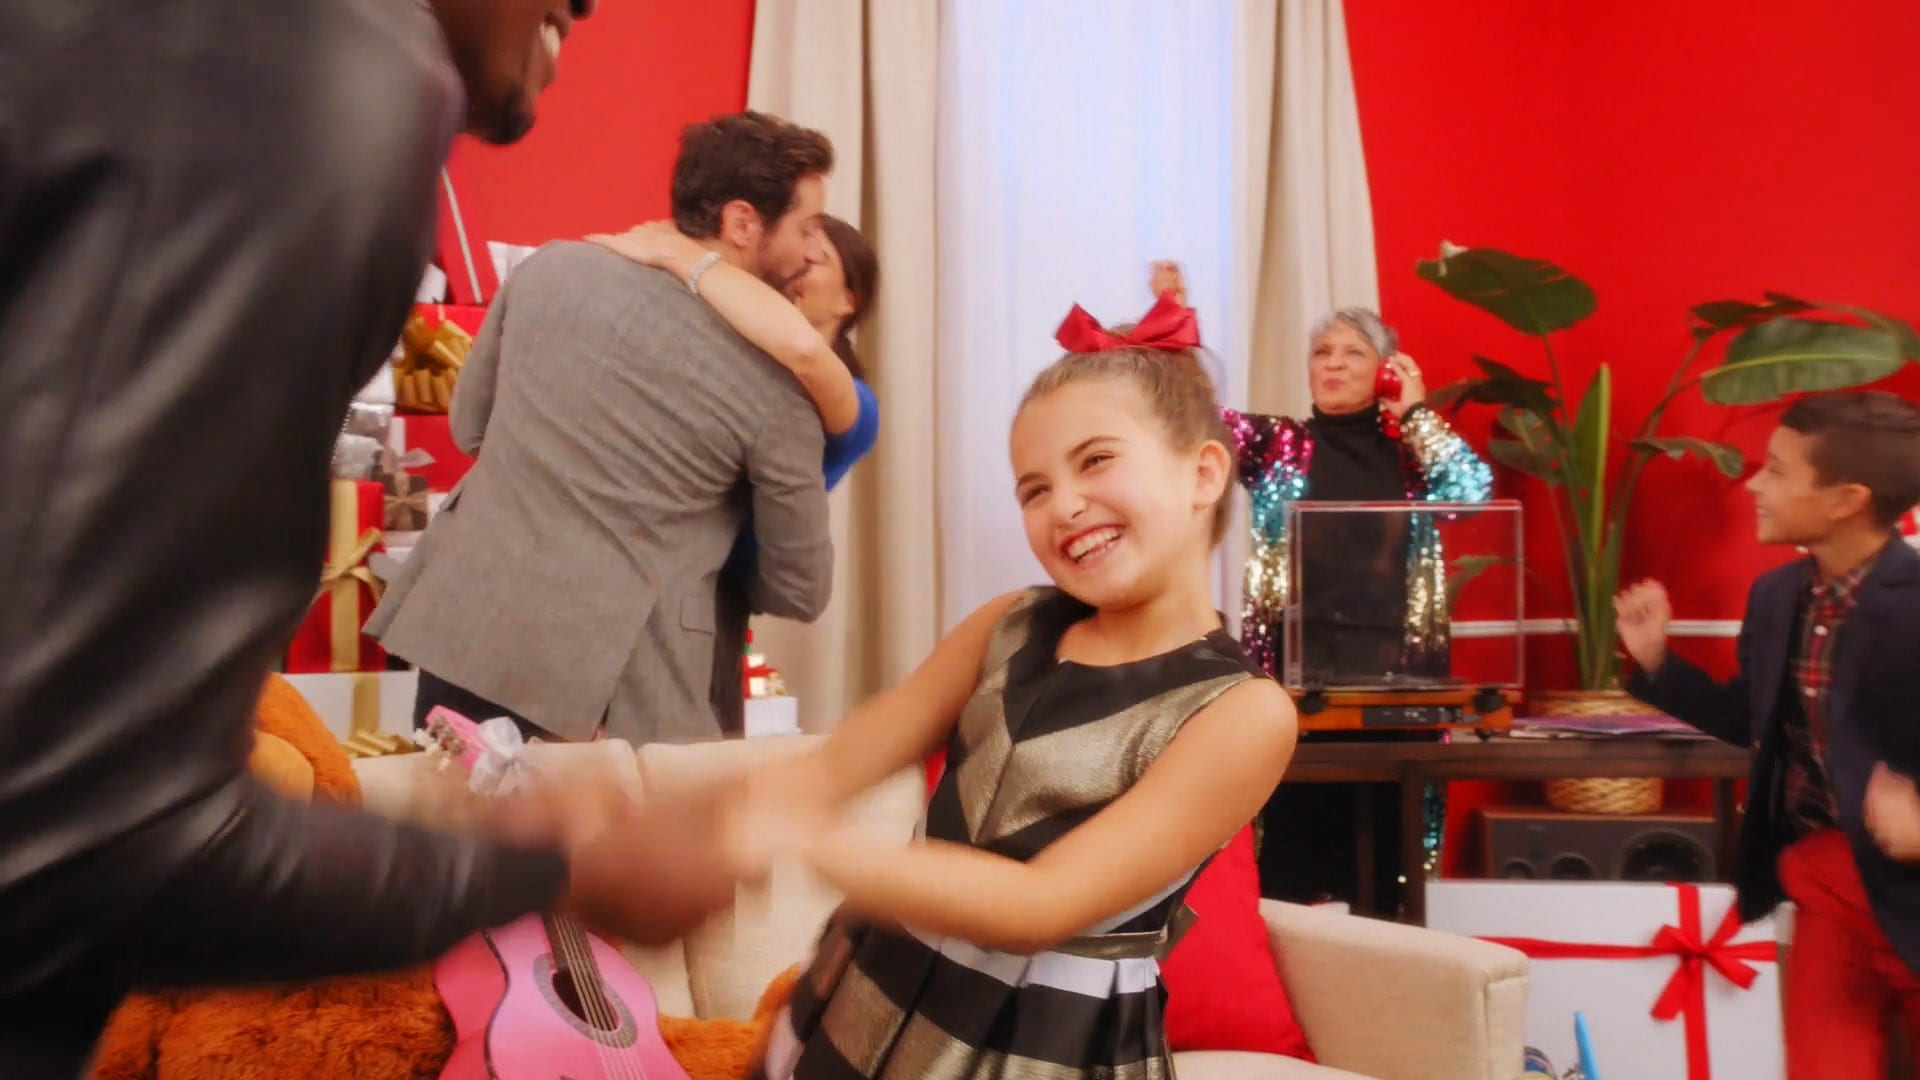 Simon Mills Holiday 2018 Commercial